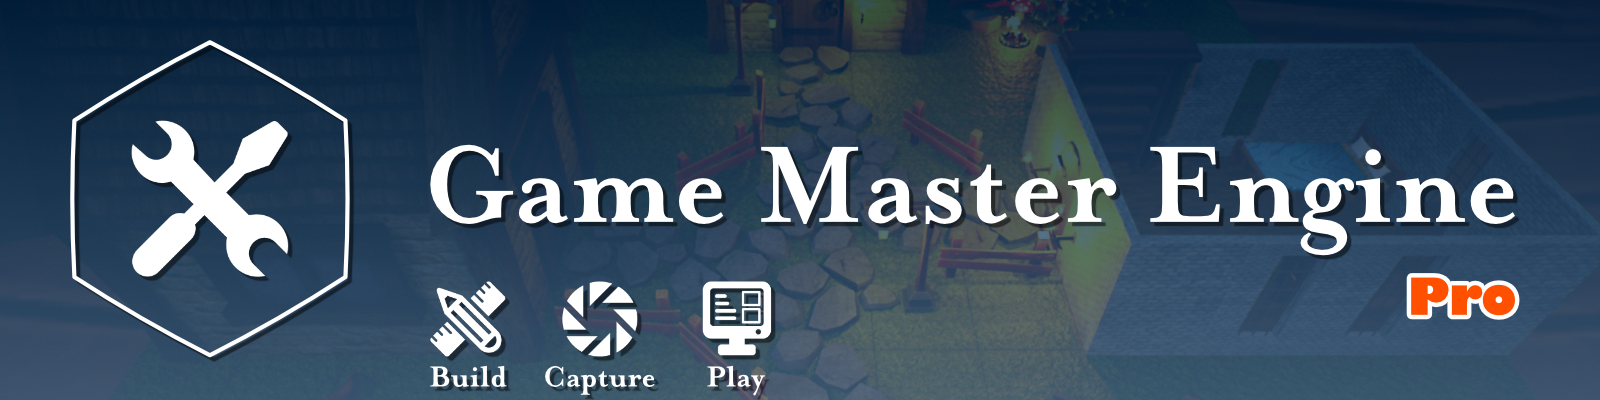 Game Master Engine Pro